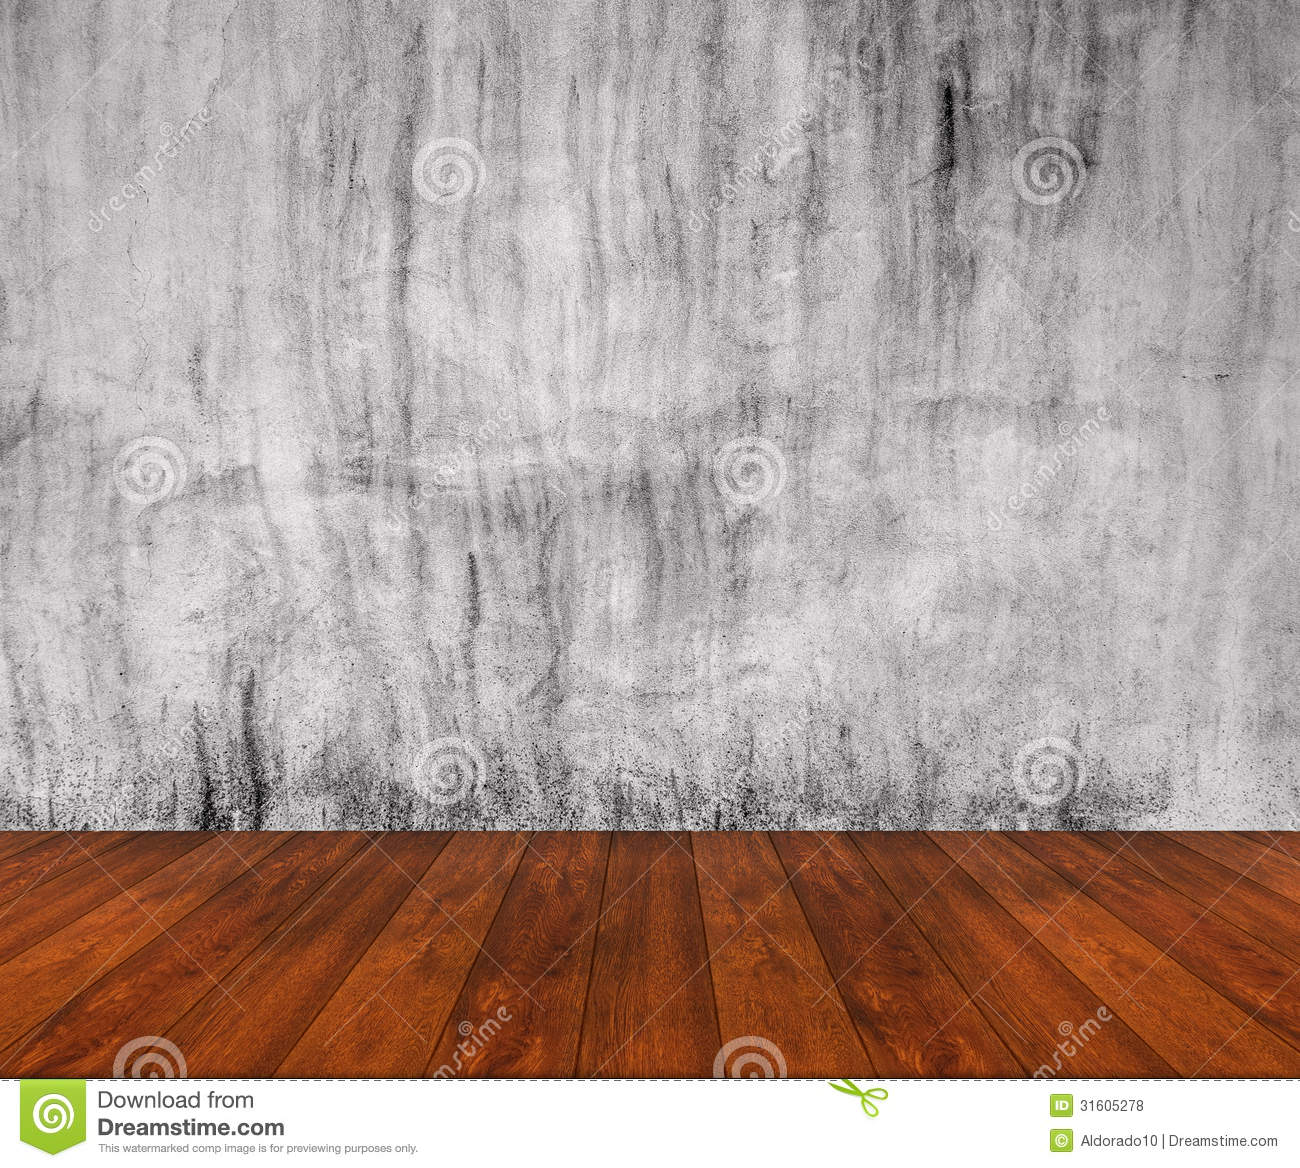 Wooden Floor With Concrete Wall Stock Photo Image 31605278